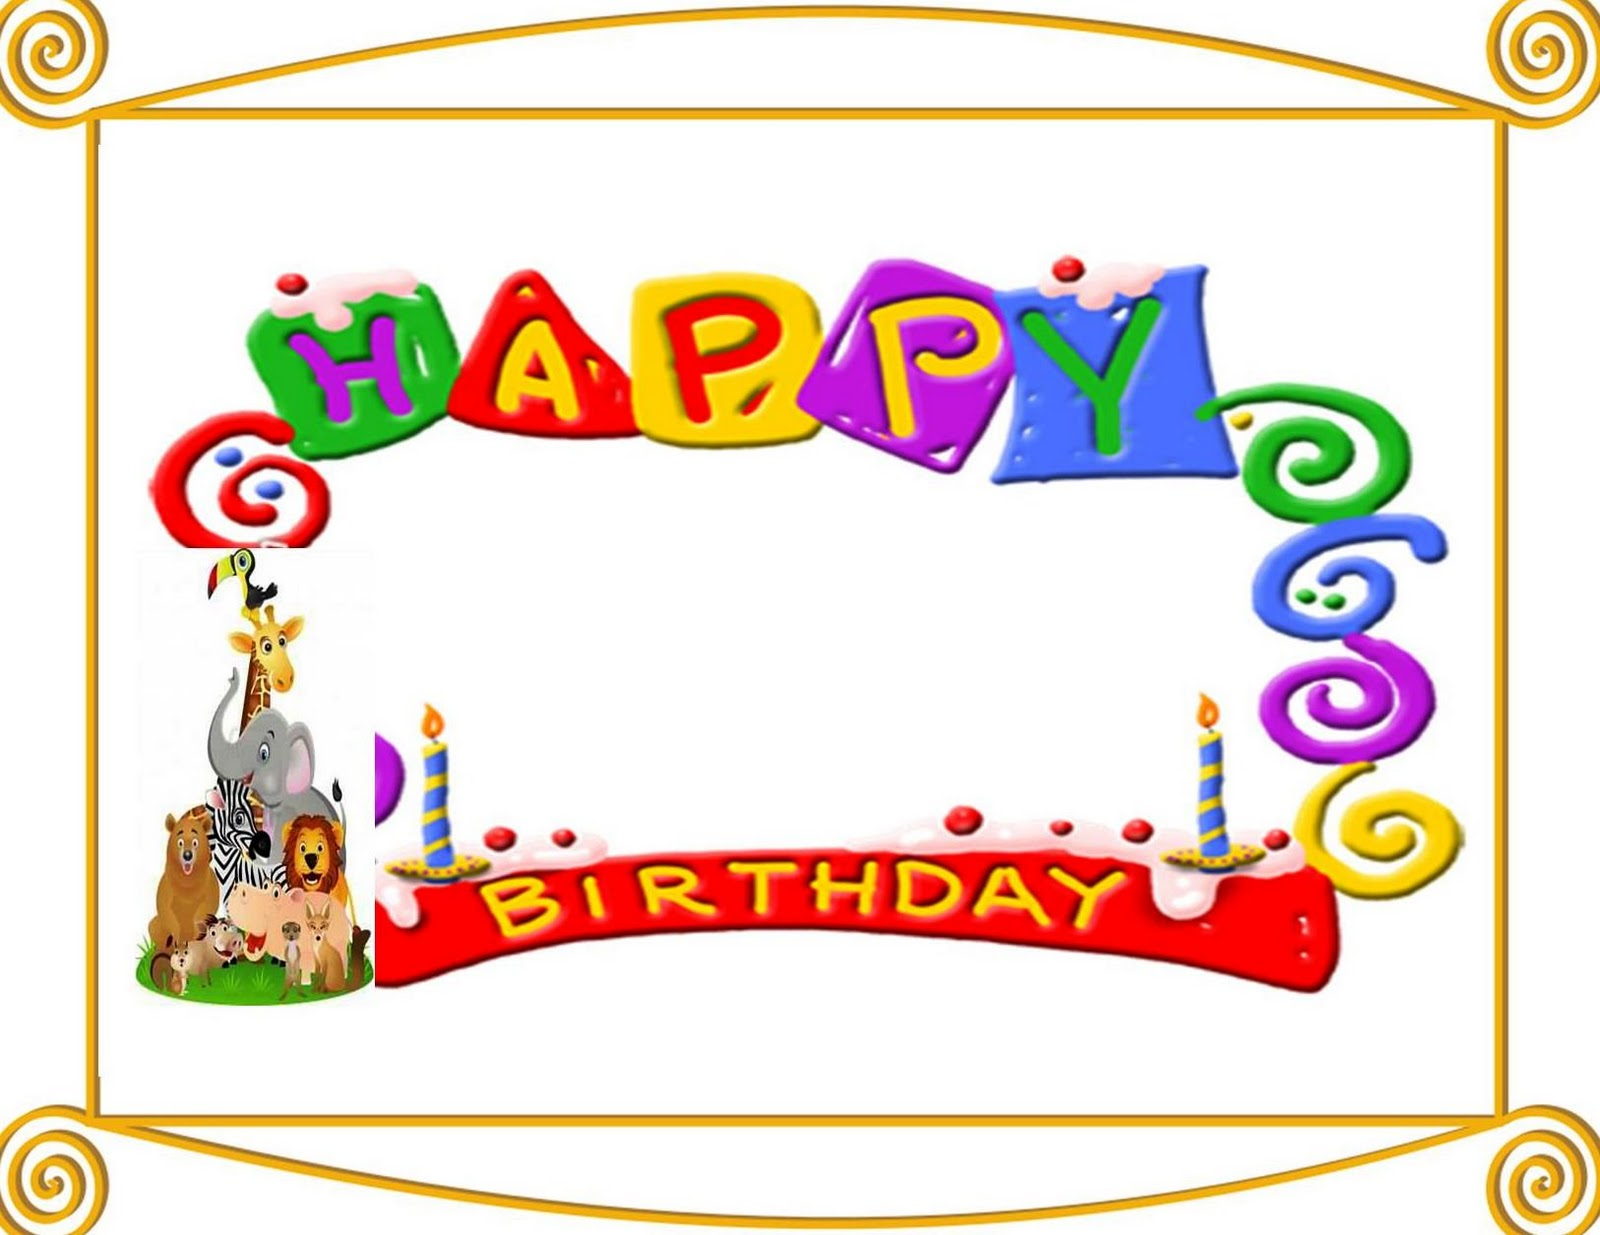 free birthday clipart borders and frames ; Beautiful_Birthday_Border_Clip_Art